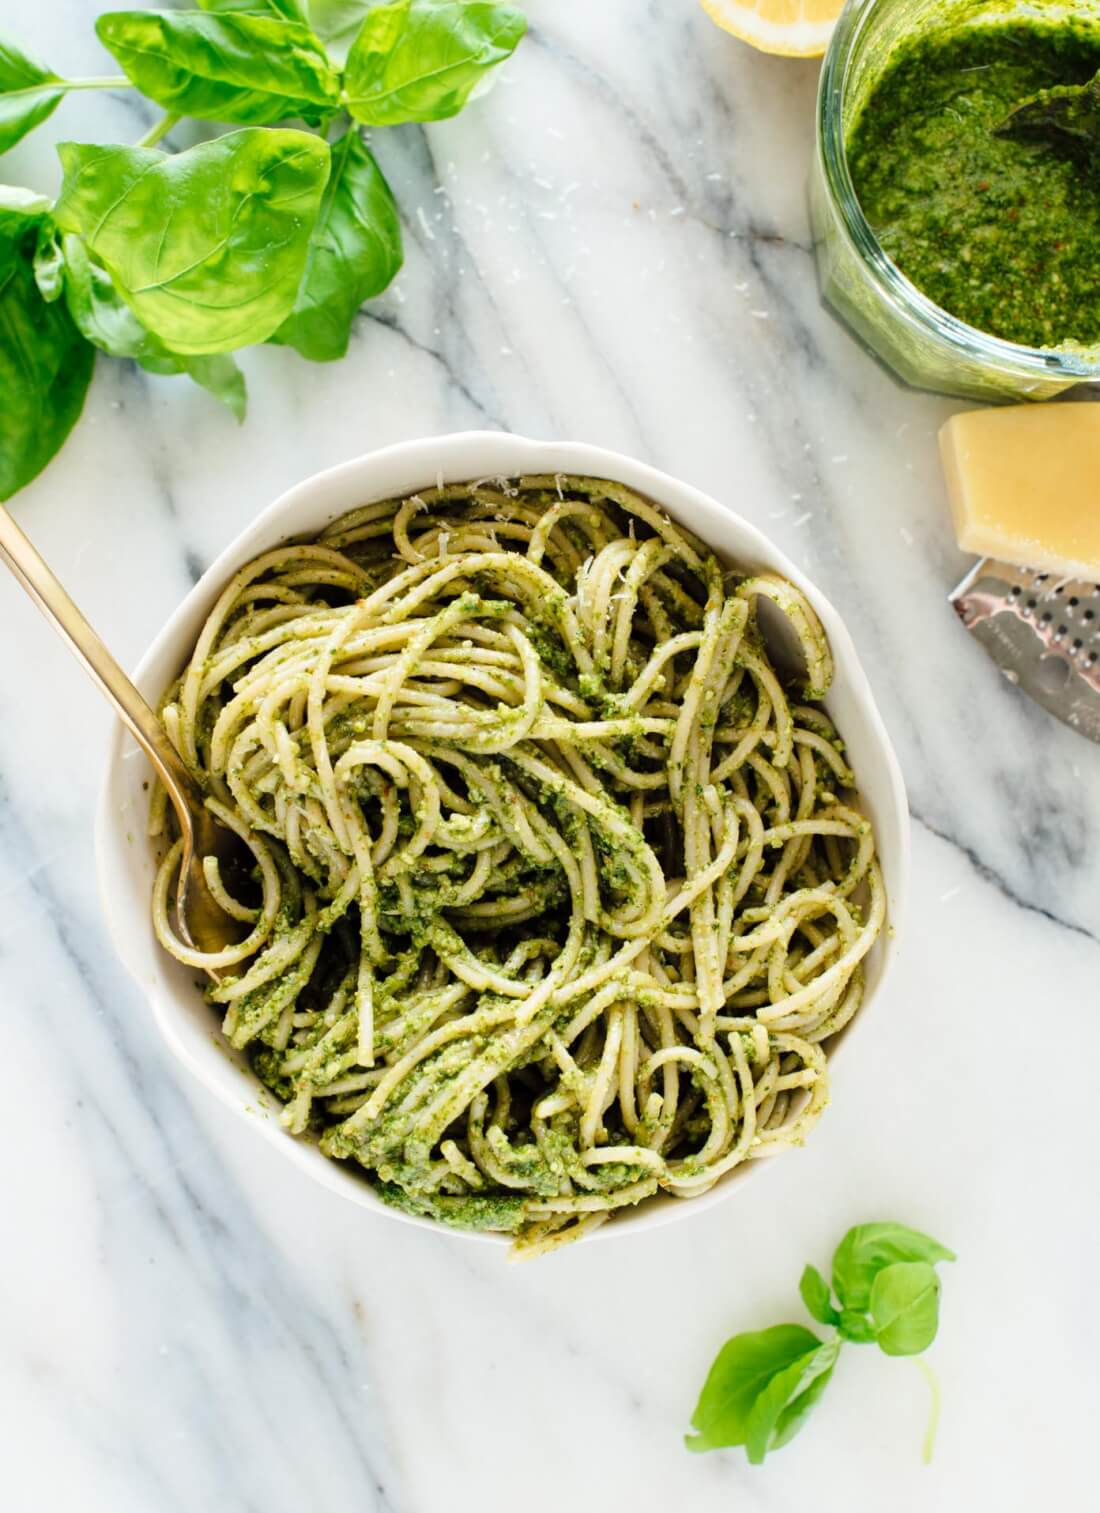 Basil pesto pasta, featuring homemade basil pesto! Learn how to make basil pesto at cookieandkate.com